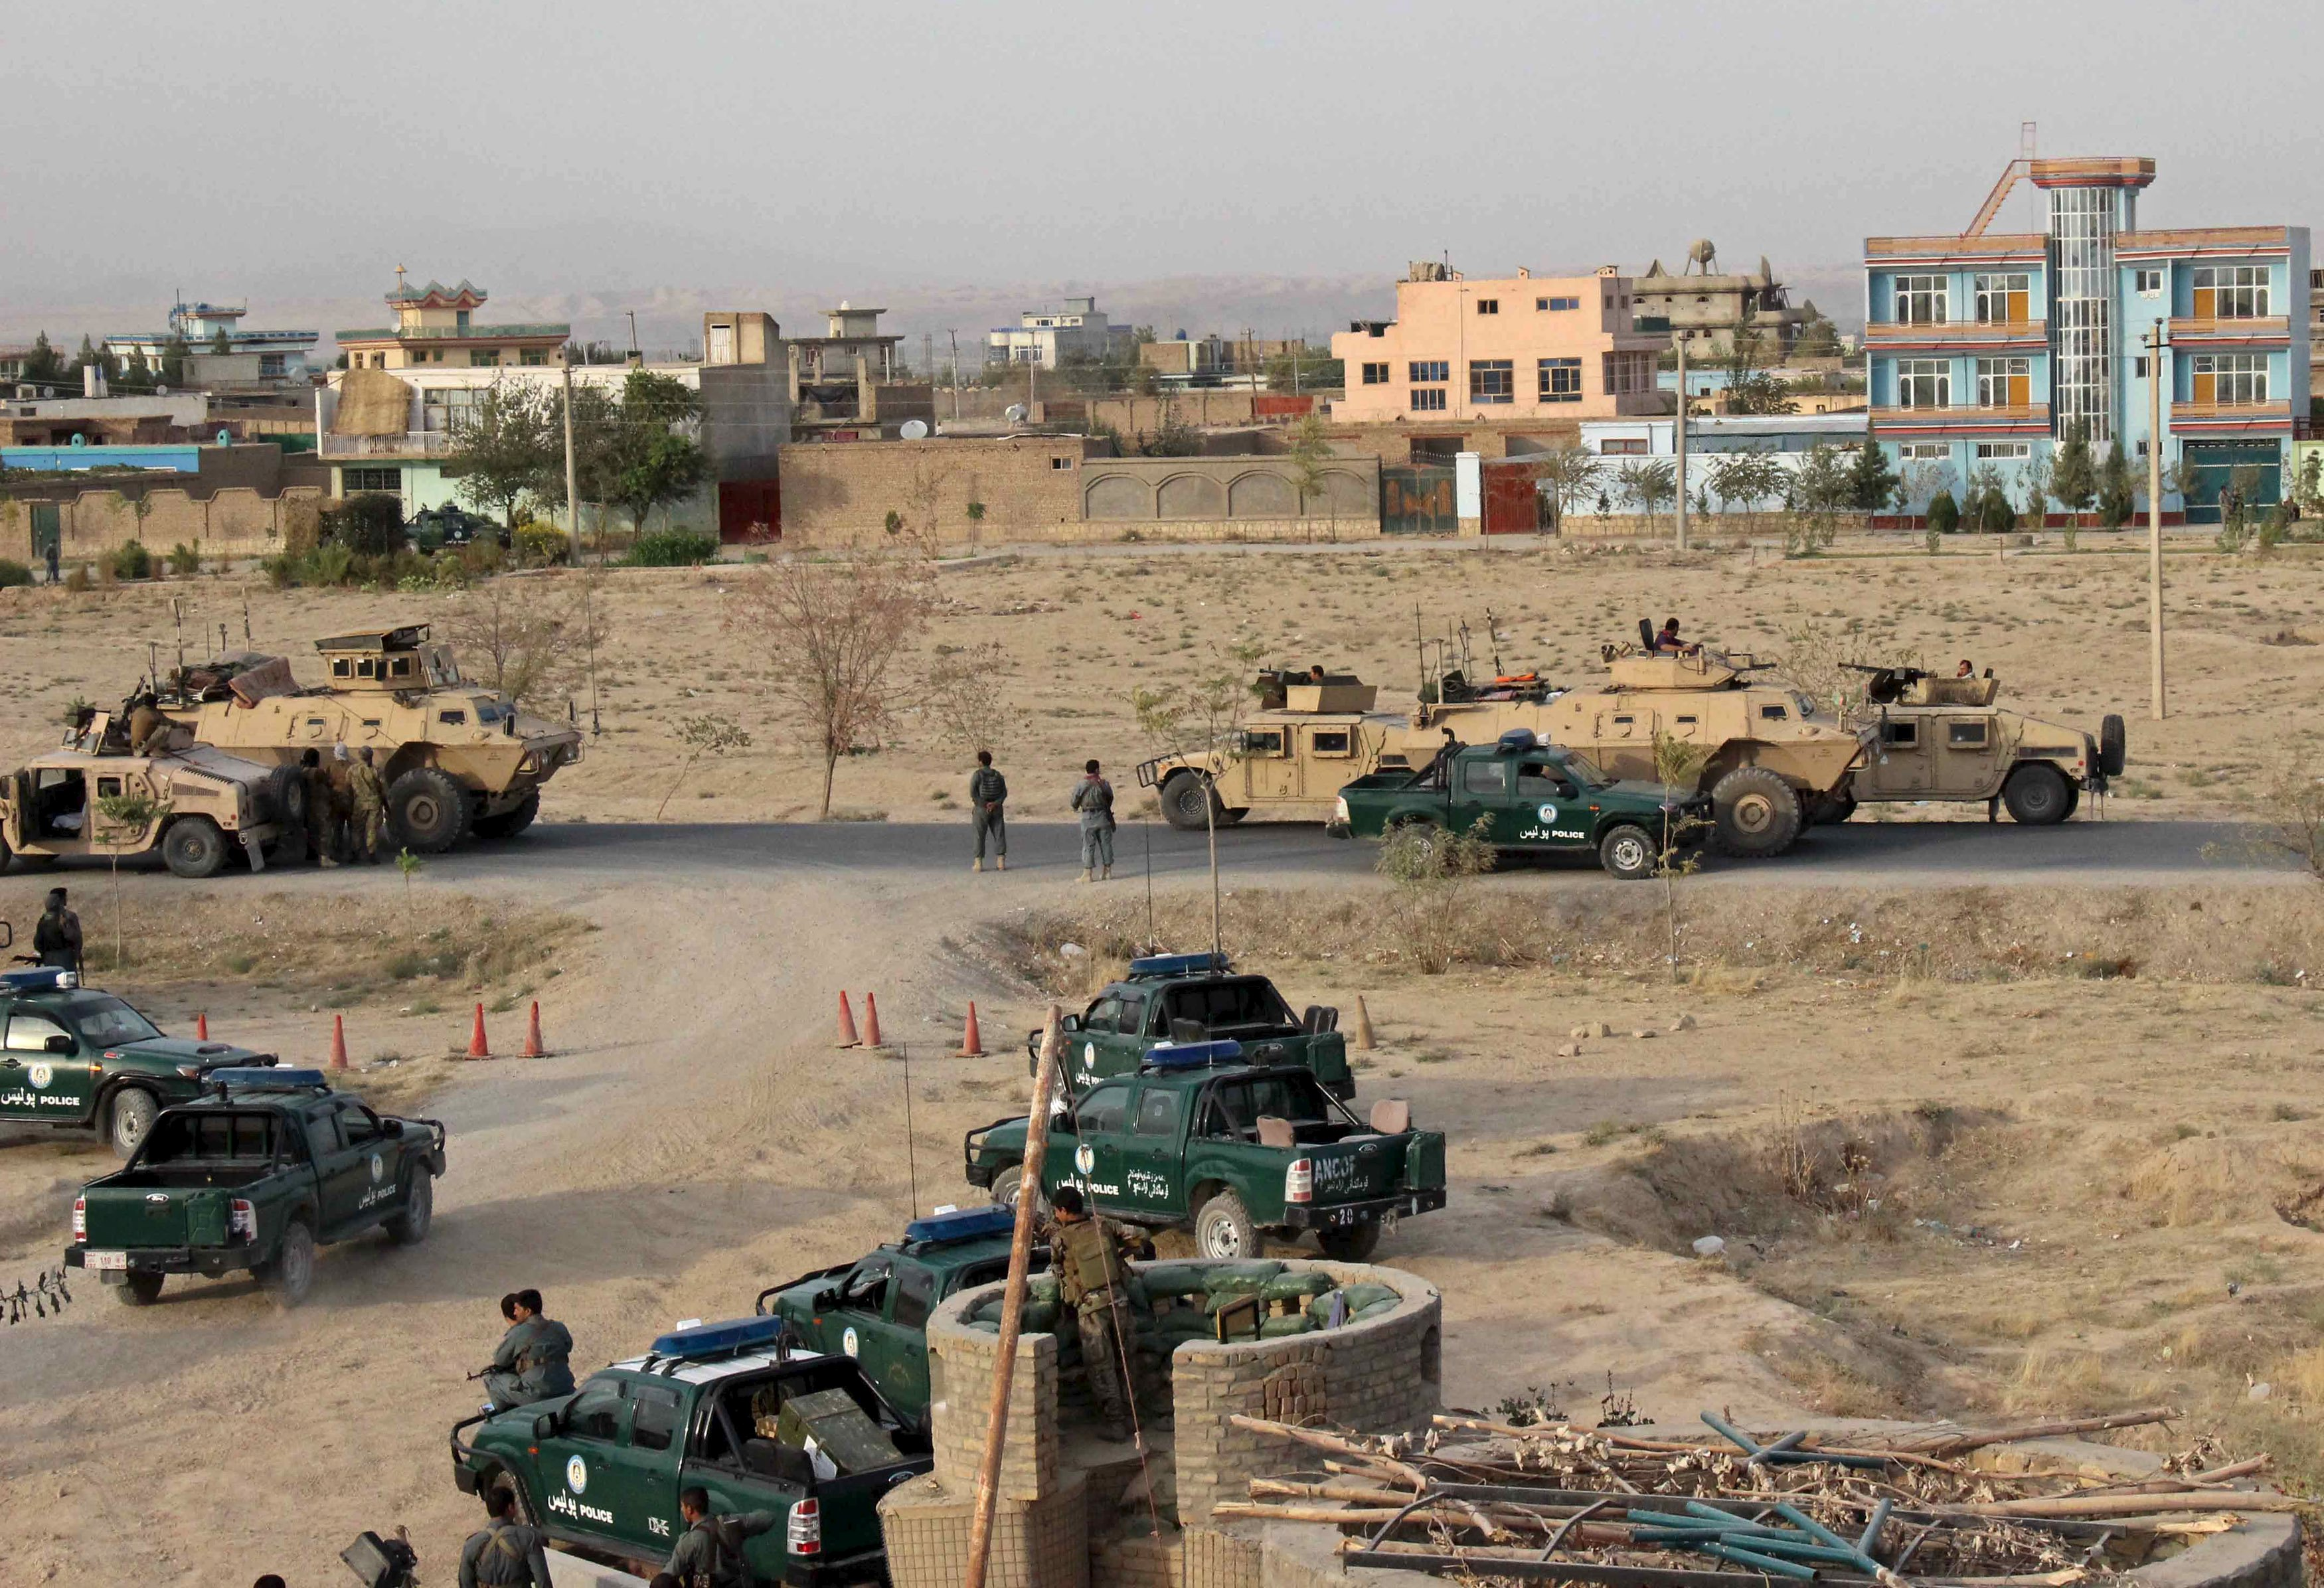 Afghan security forces take their positions during a gun battle in Kunduz city, northern Afghanistan September 29, 2015. Afghan forces backed by Us air support battled Taliban fighters for control of the northern city of Kunduz on Tuesday, after the militants seized the provincial capital for the first time since their ouster 14 years ago.  Photo: Reuters